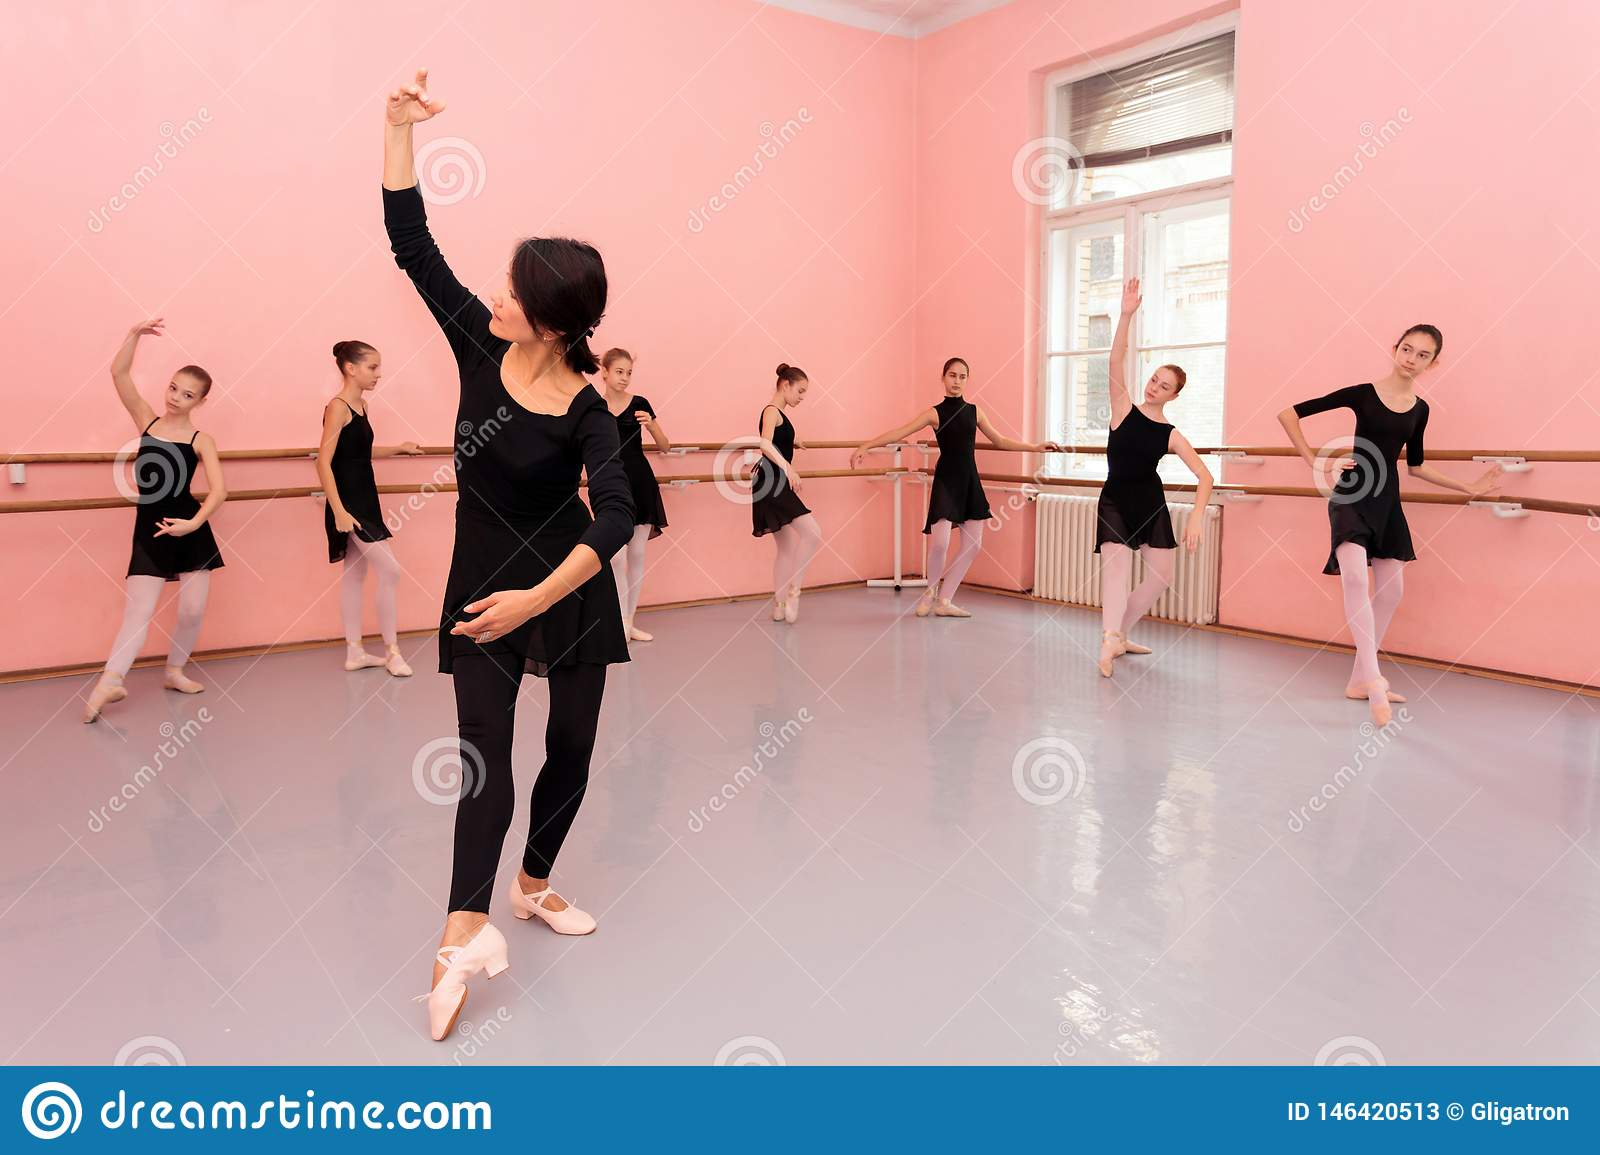 Mature female ballet teacher demonstrating dancing moves in front of a group of young teenage girls